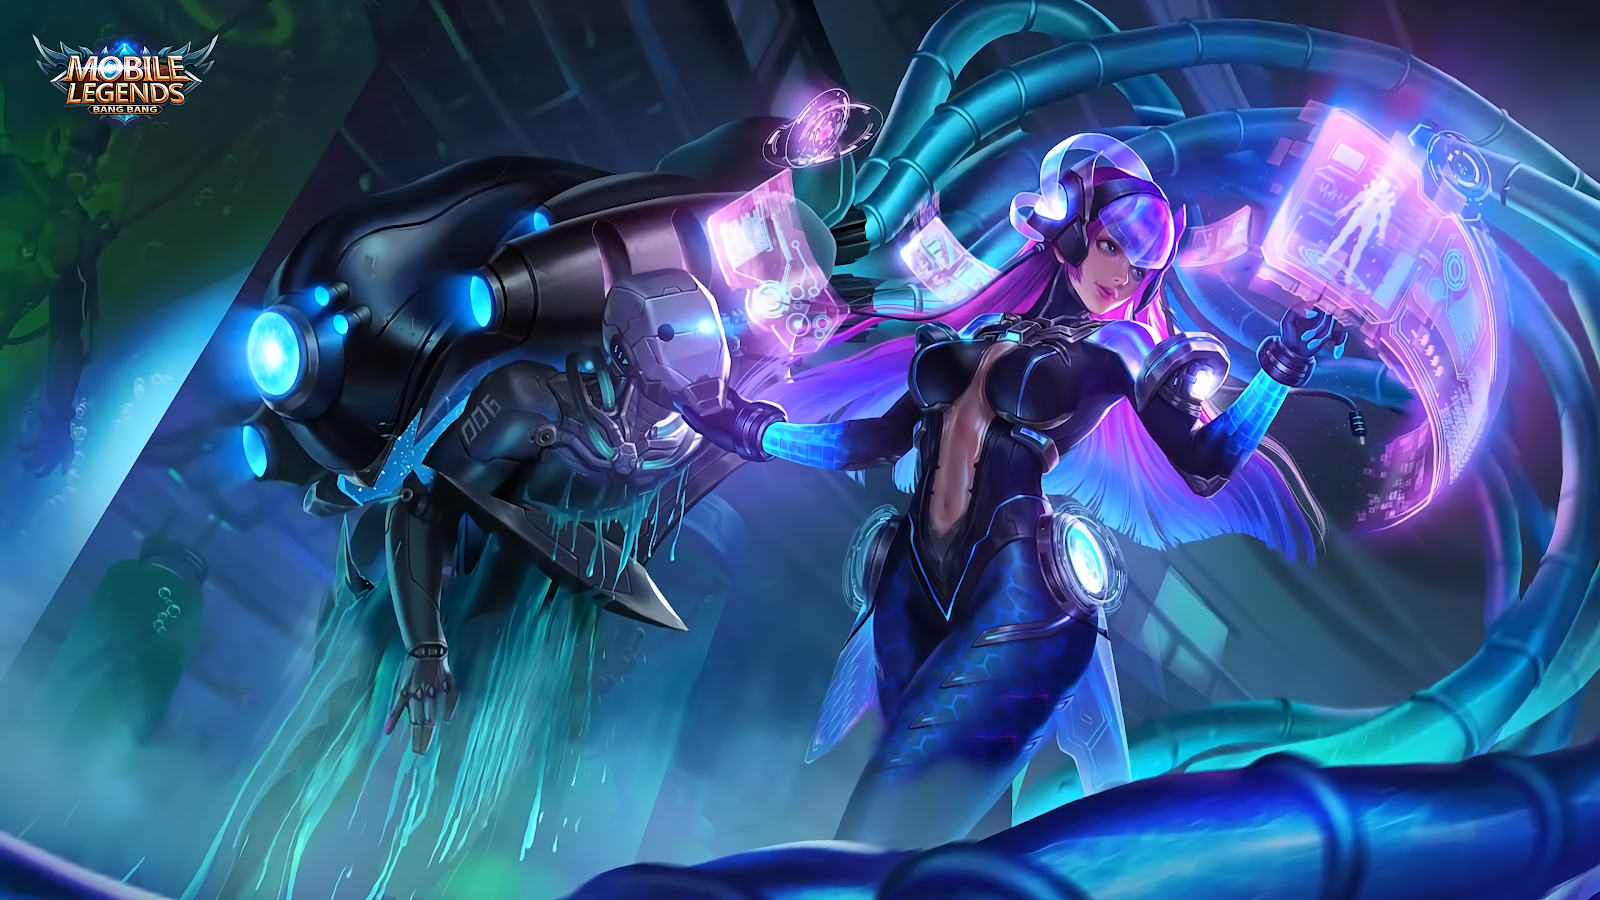 Layla Mobile Legends Wallpapers